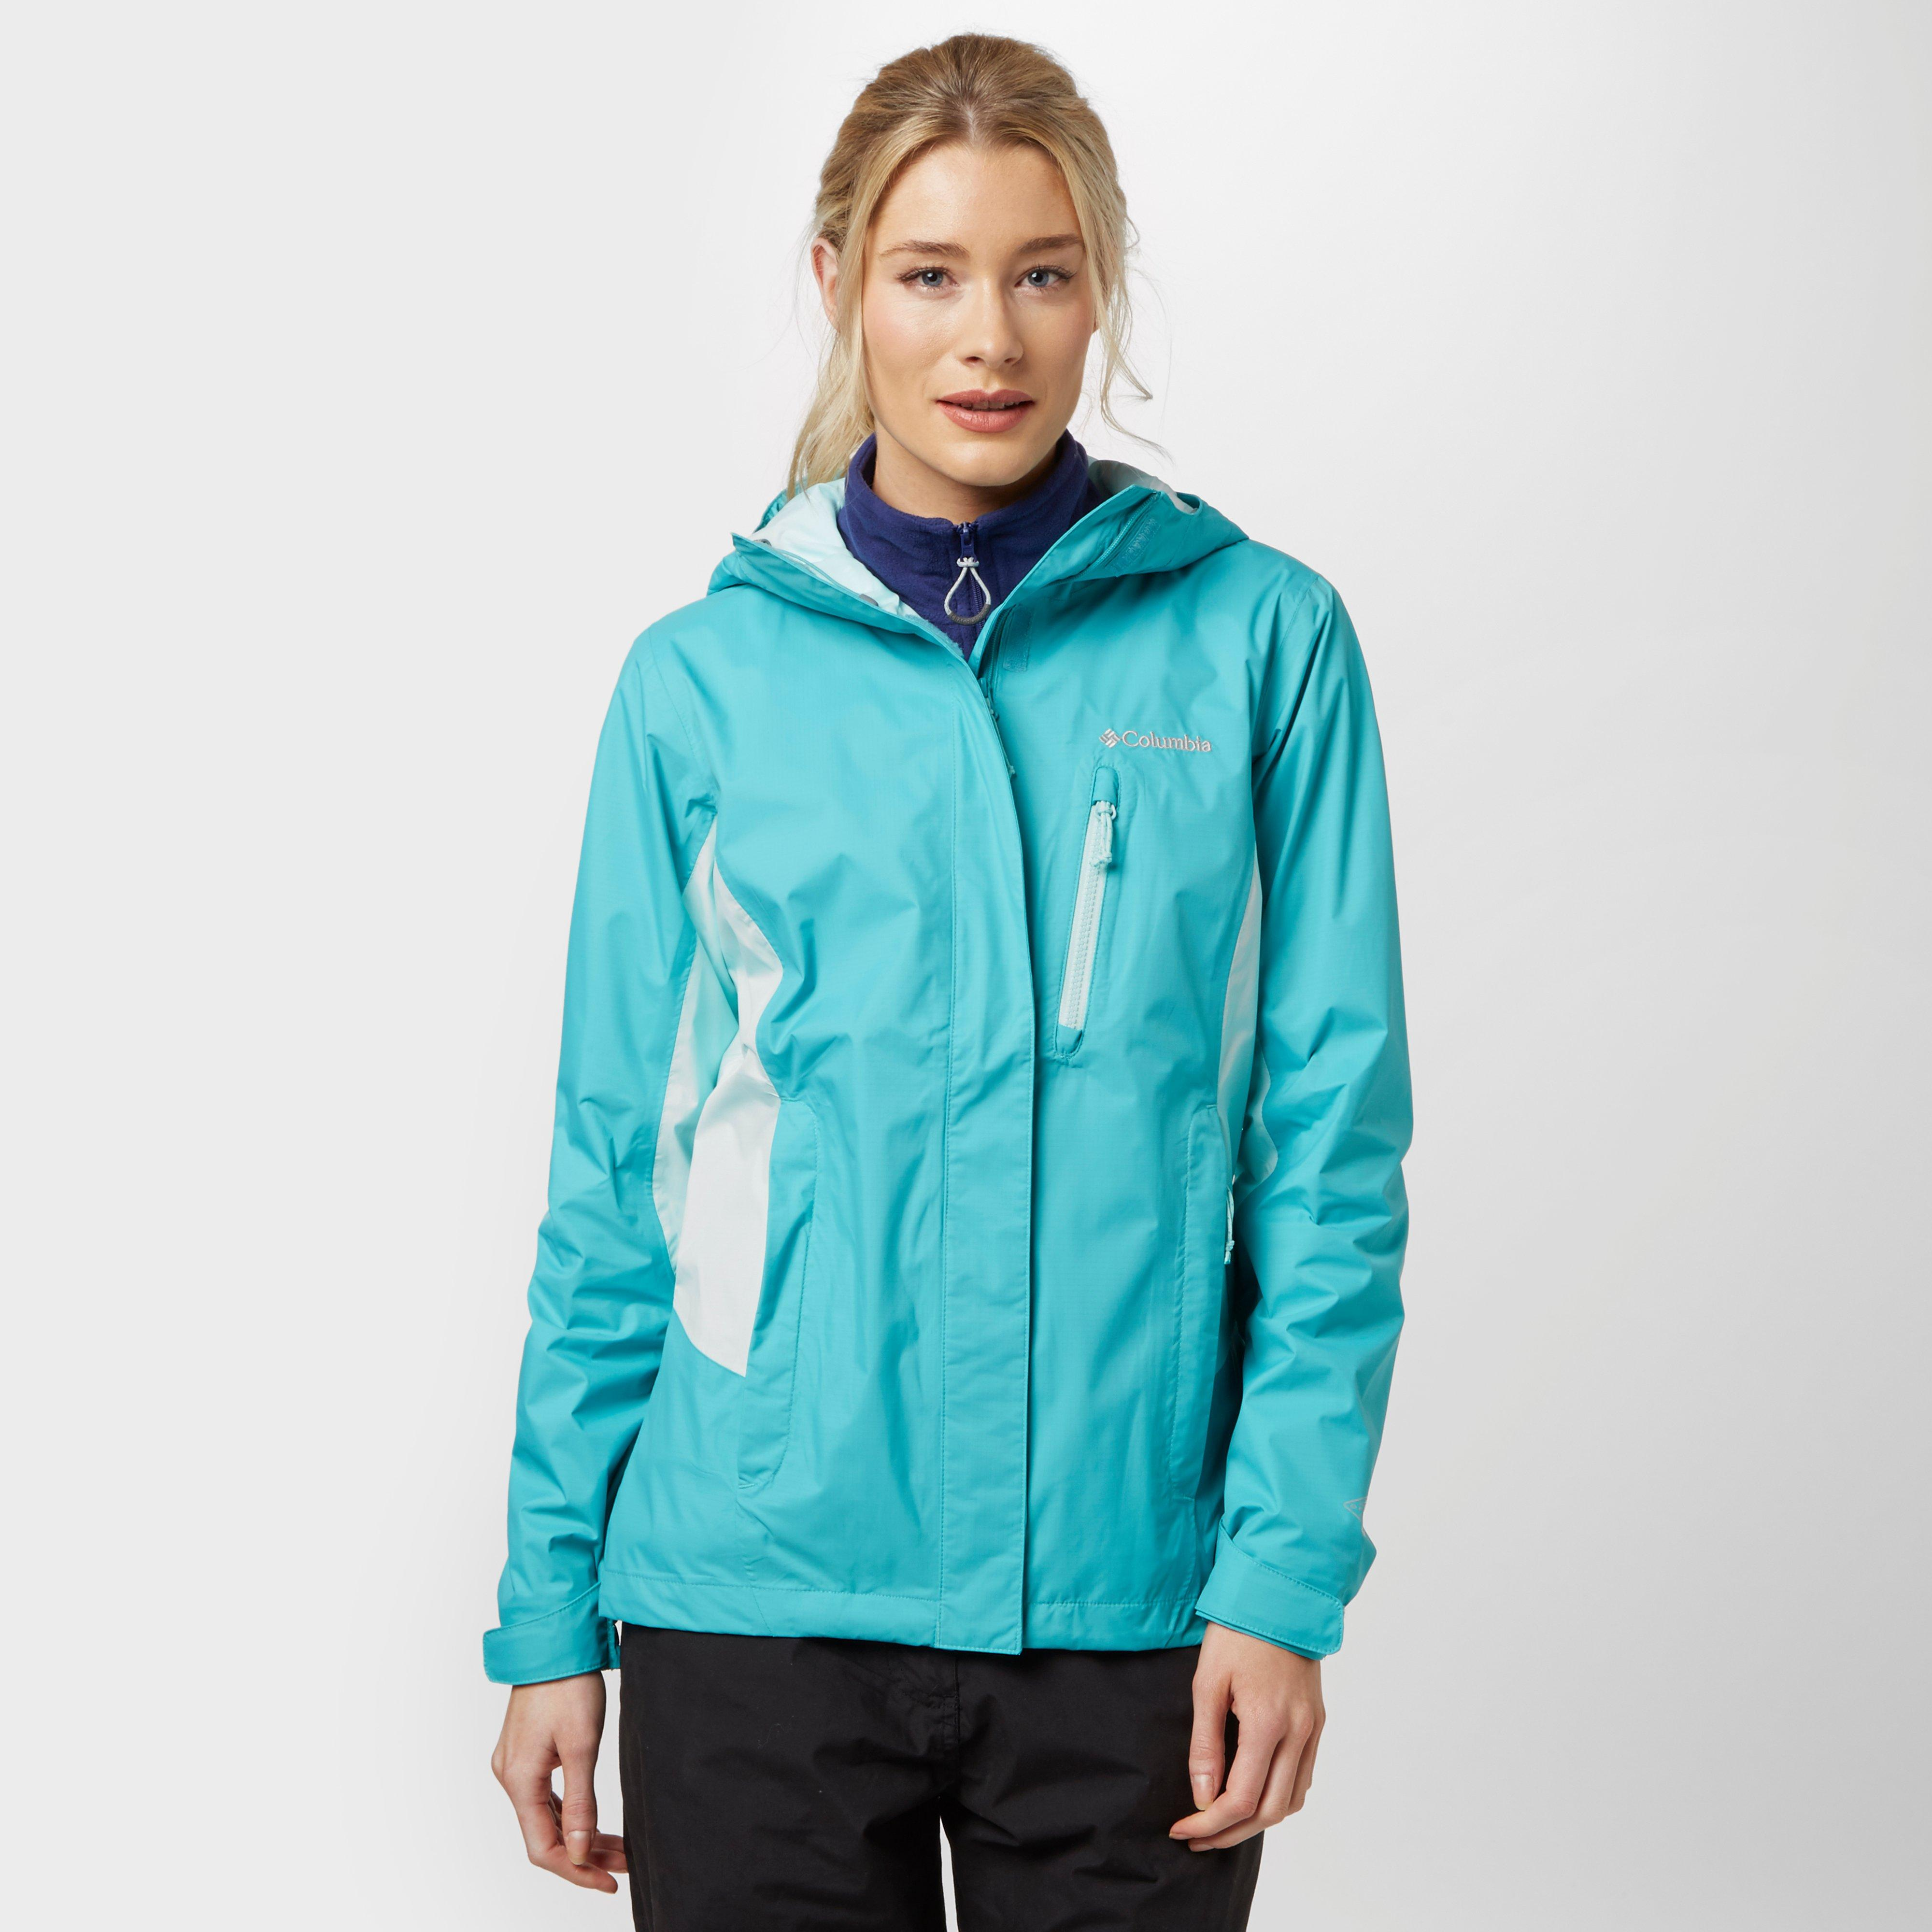 Columbia Pouring Jacket - Womenu0026#39;s - Jacket Compare - Compare Outdoor Jacket Prices | Jacket ...